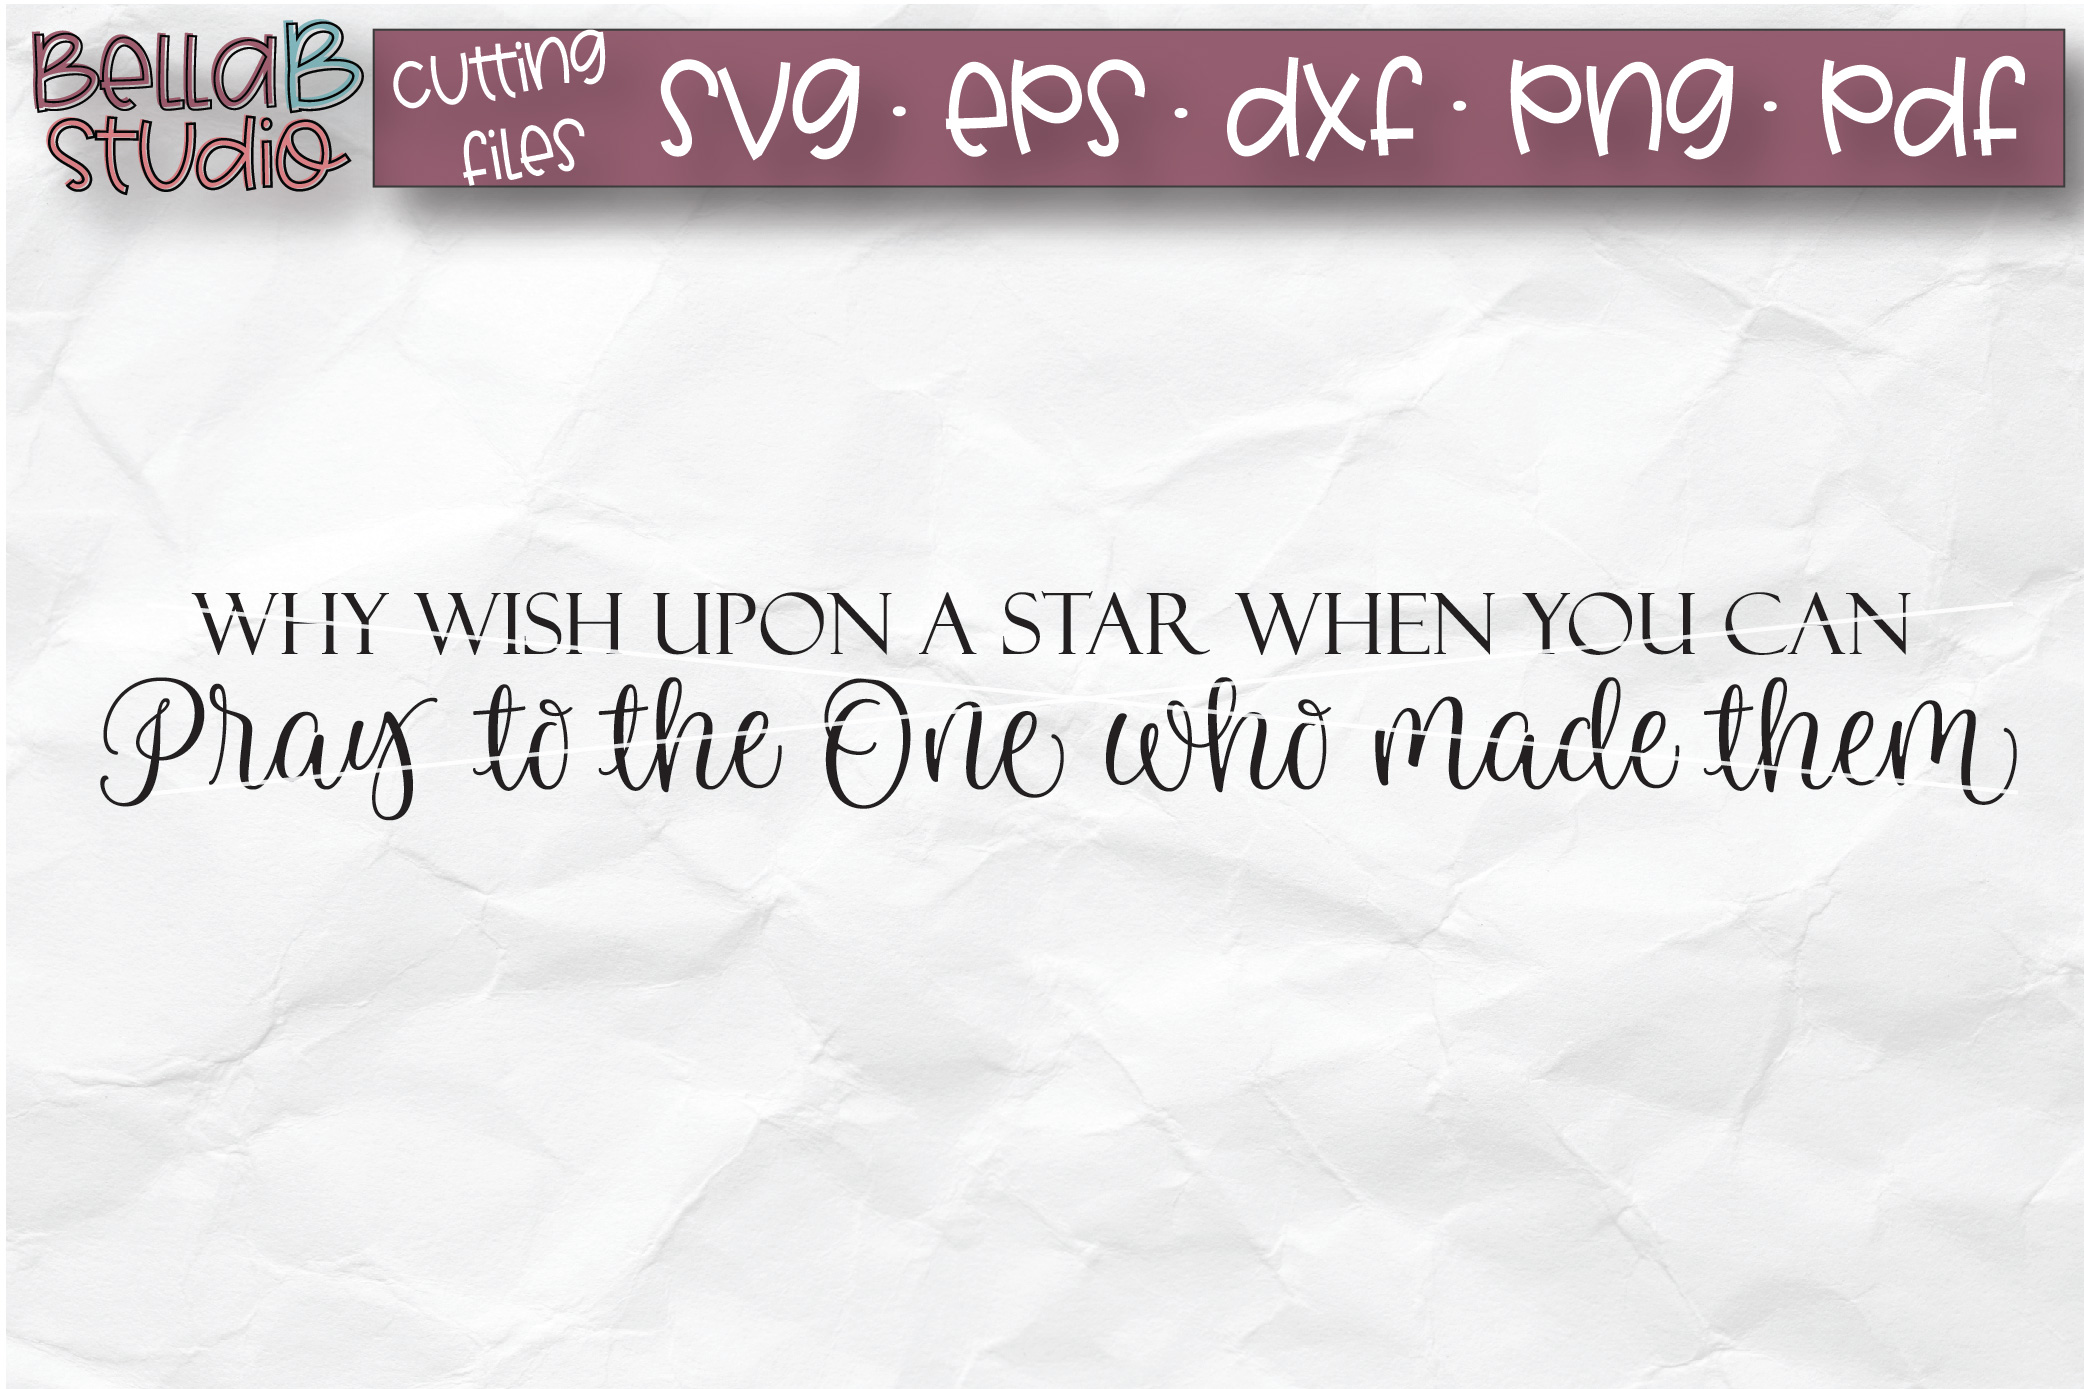 Why Wish Upon A Star When You Can Pray SVG, Christian SVG example image 2